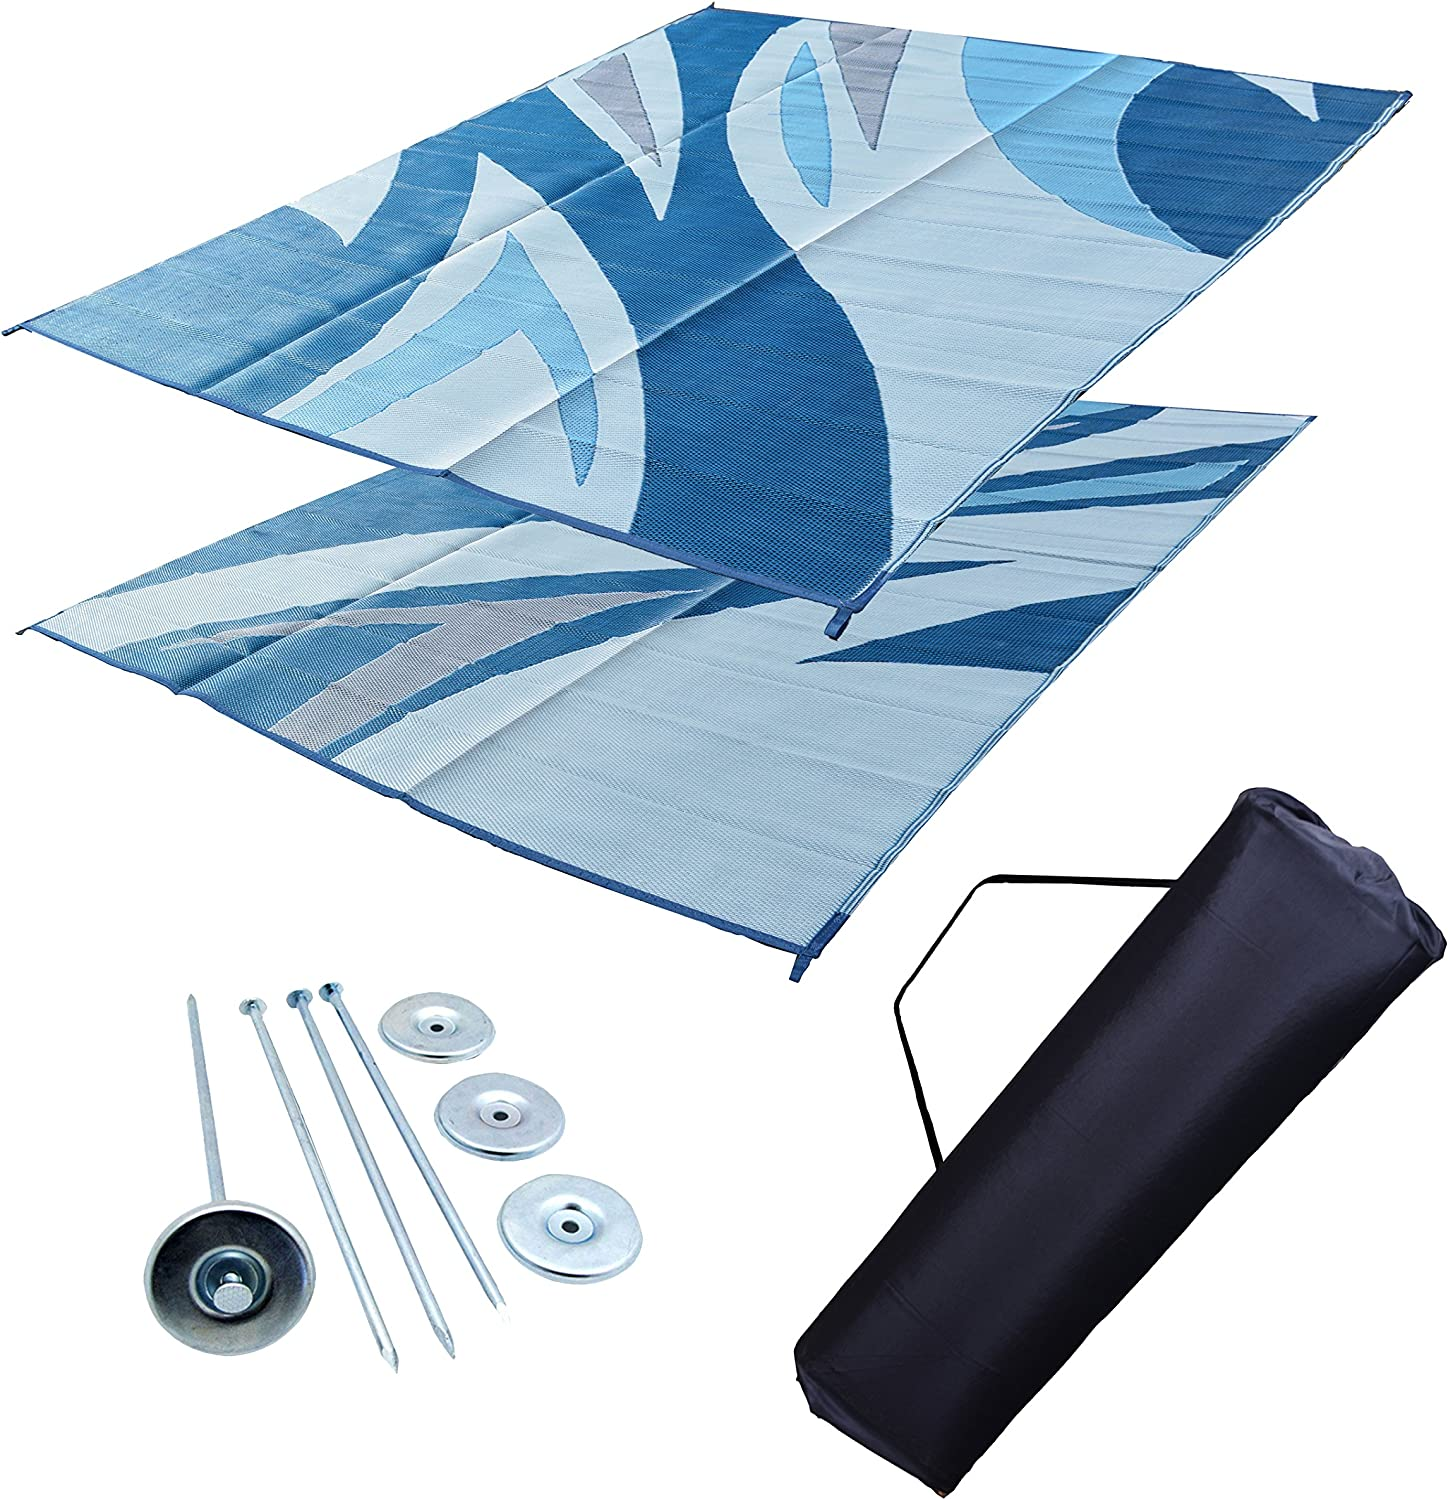 EZ Travel Mats RV Patio Mat Leisure Outdoor 9x12 New color Quality inspection Awning